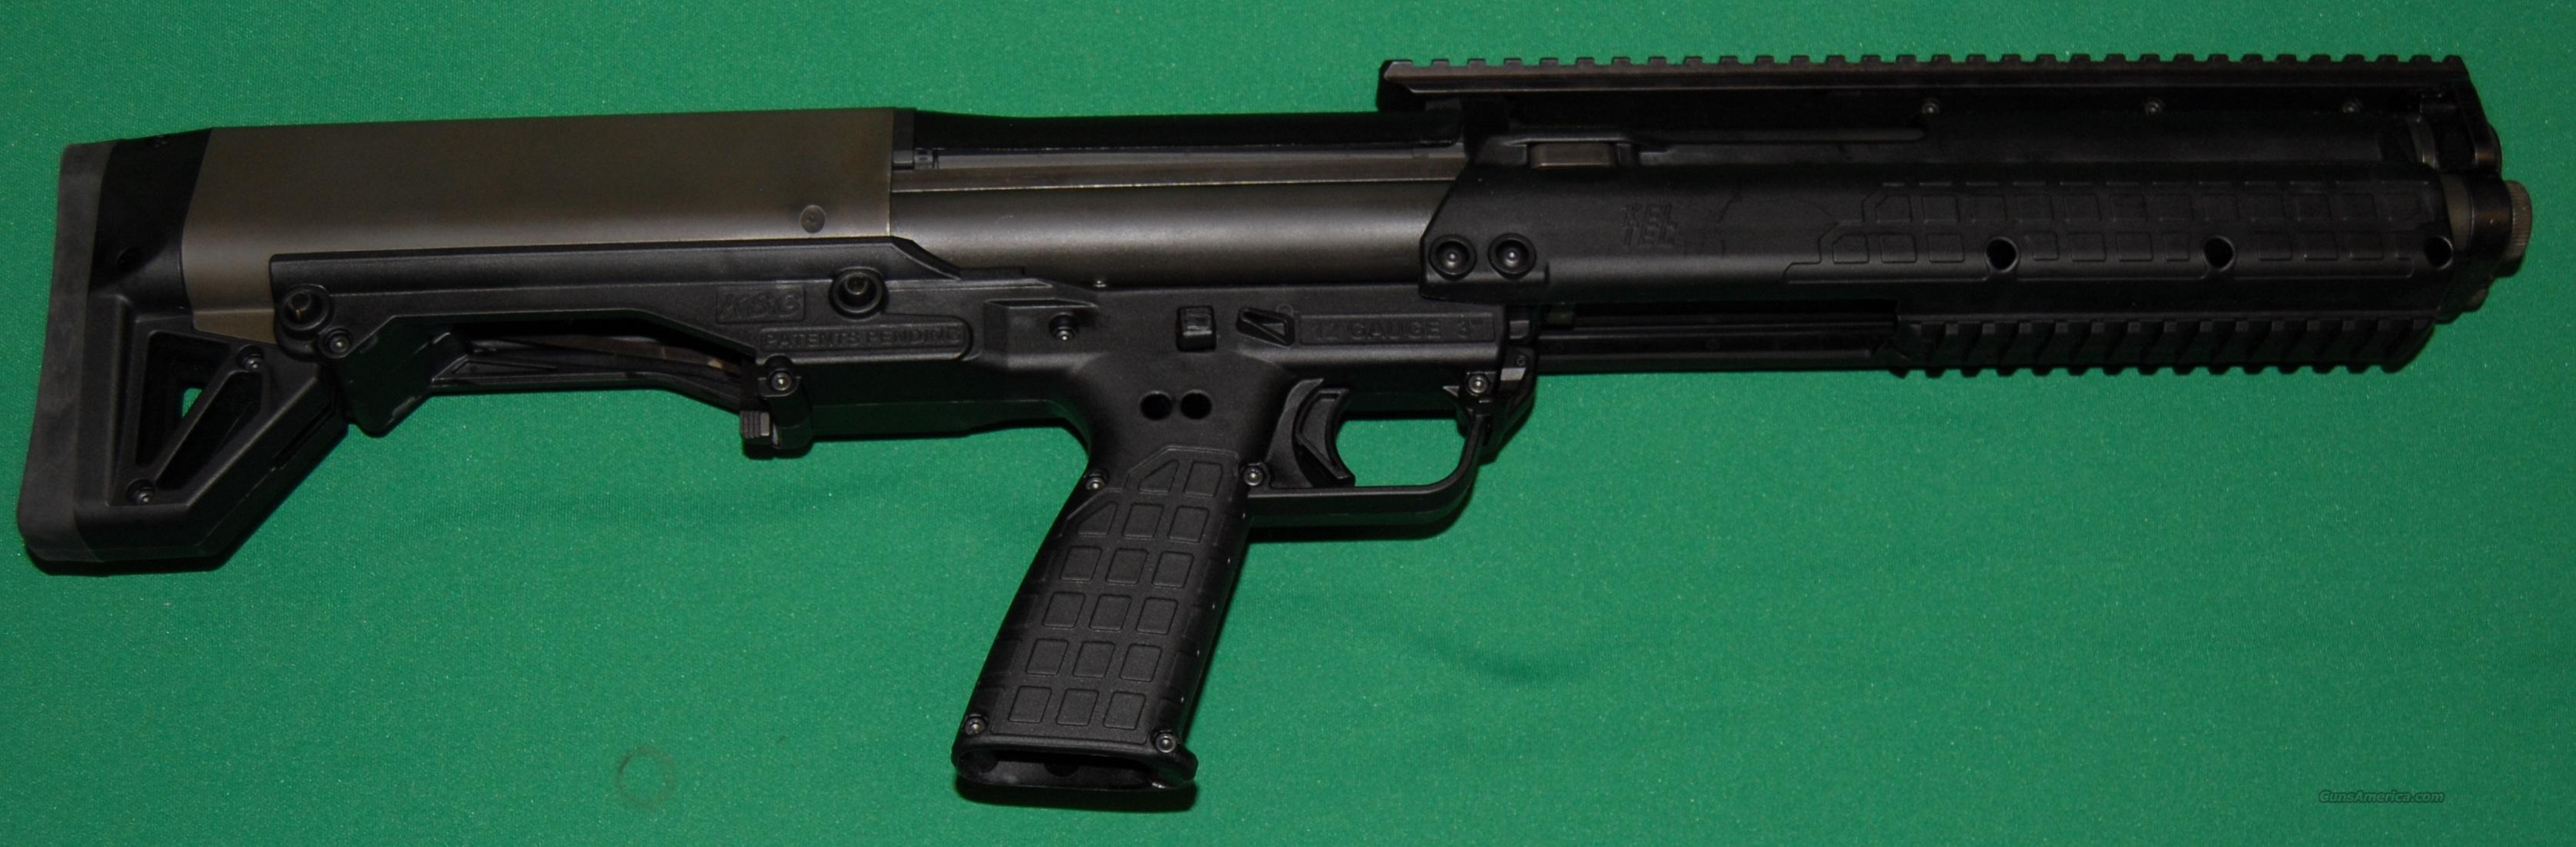 "KelTec 12ga 3"", New in Box  Guns > Shotguns > Kel-Tec Shotguns > KSG"